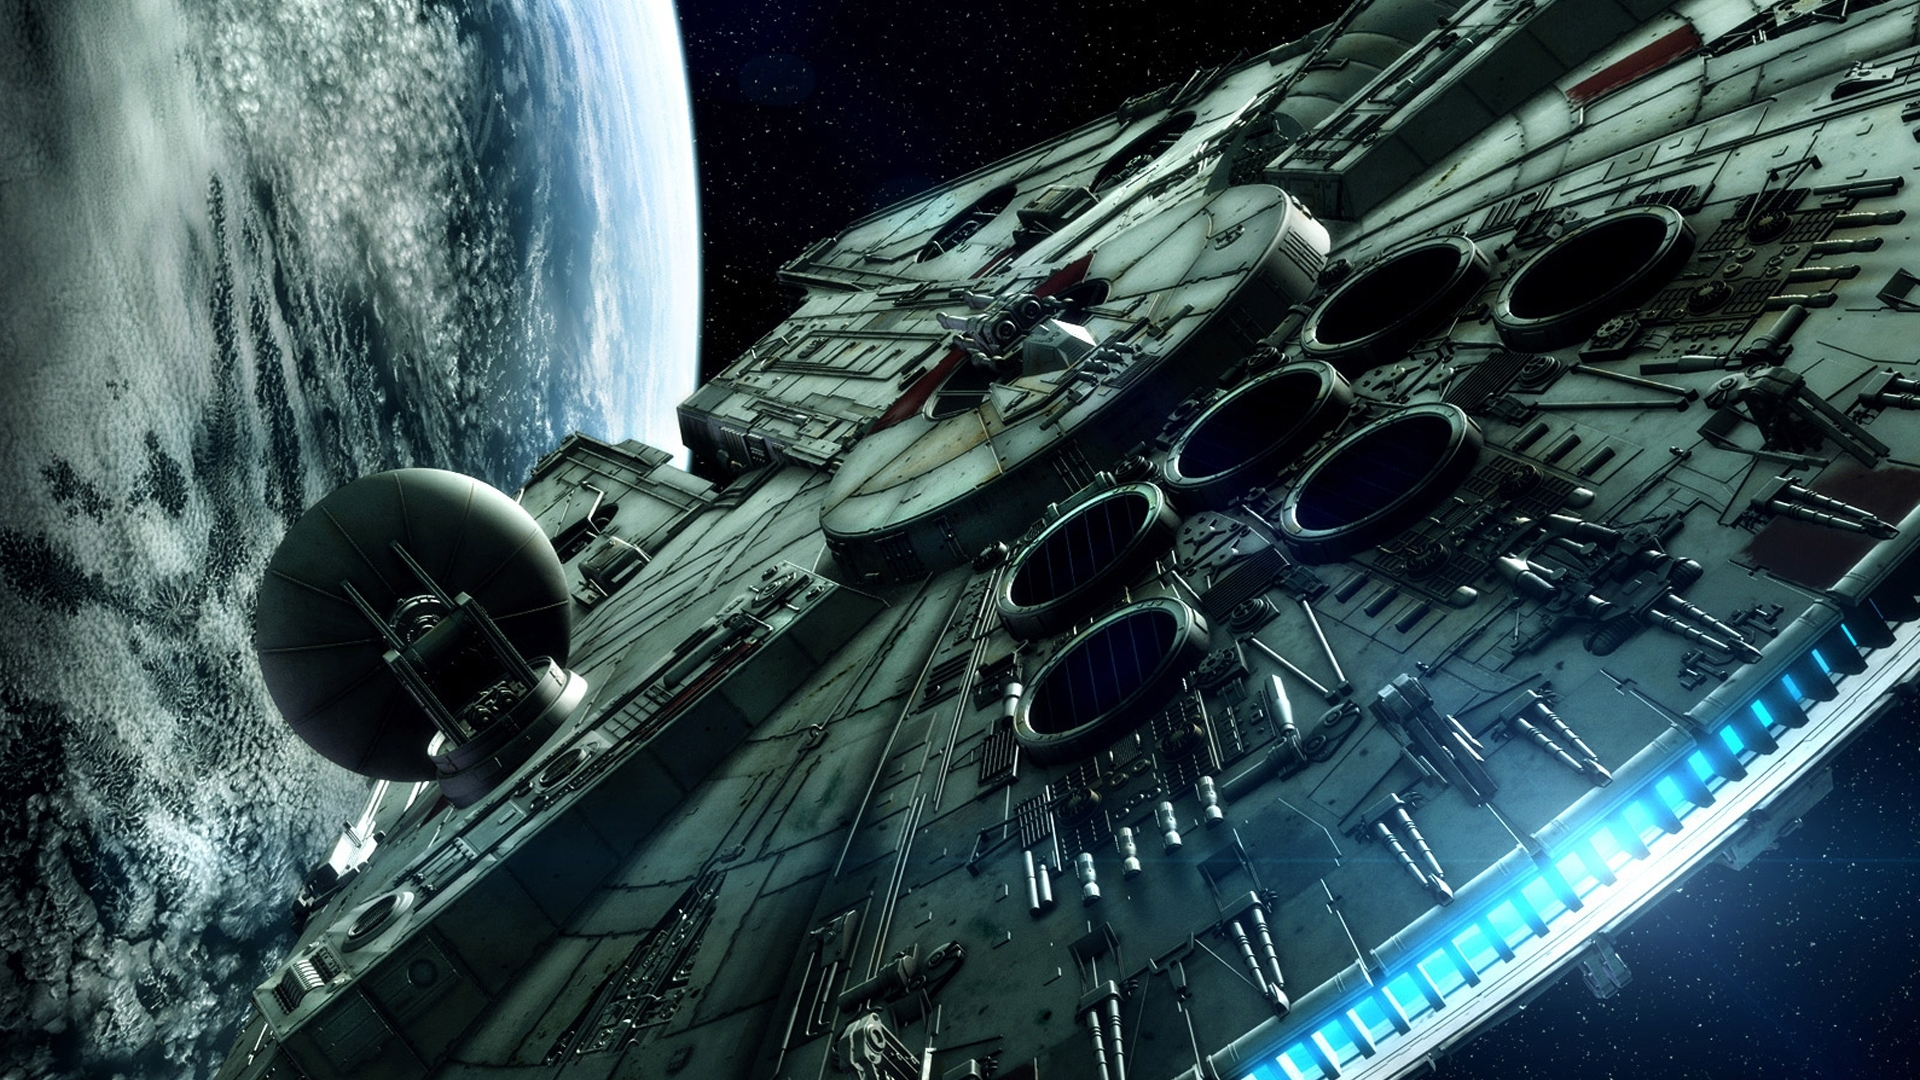 10 Best Star Wars Hd Wallpaper Widescreen FULL HD 1920×1080 For PC Background